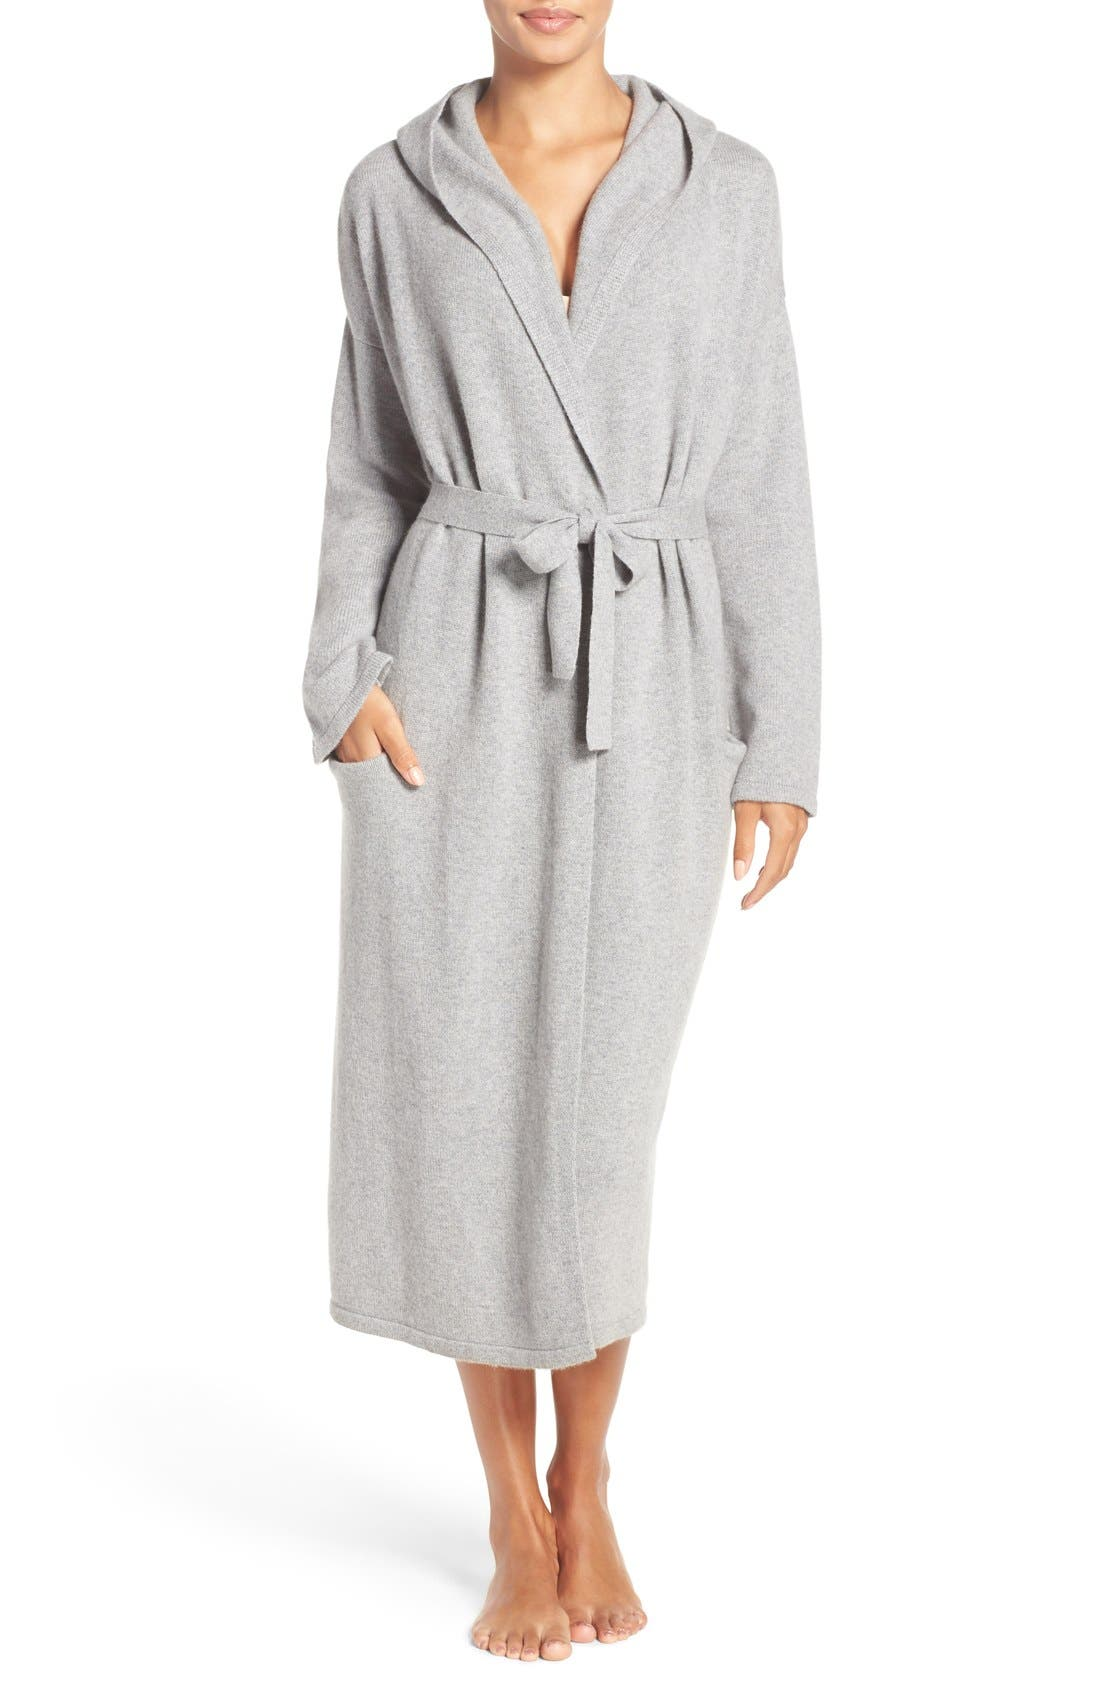 'Evie' Hooded Cashmere Robe,                             Main thumbnail 1, color,                             020